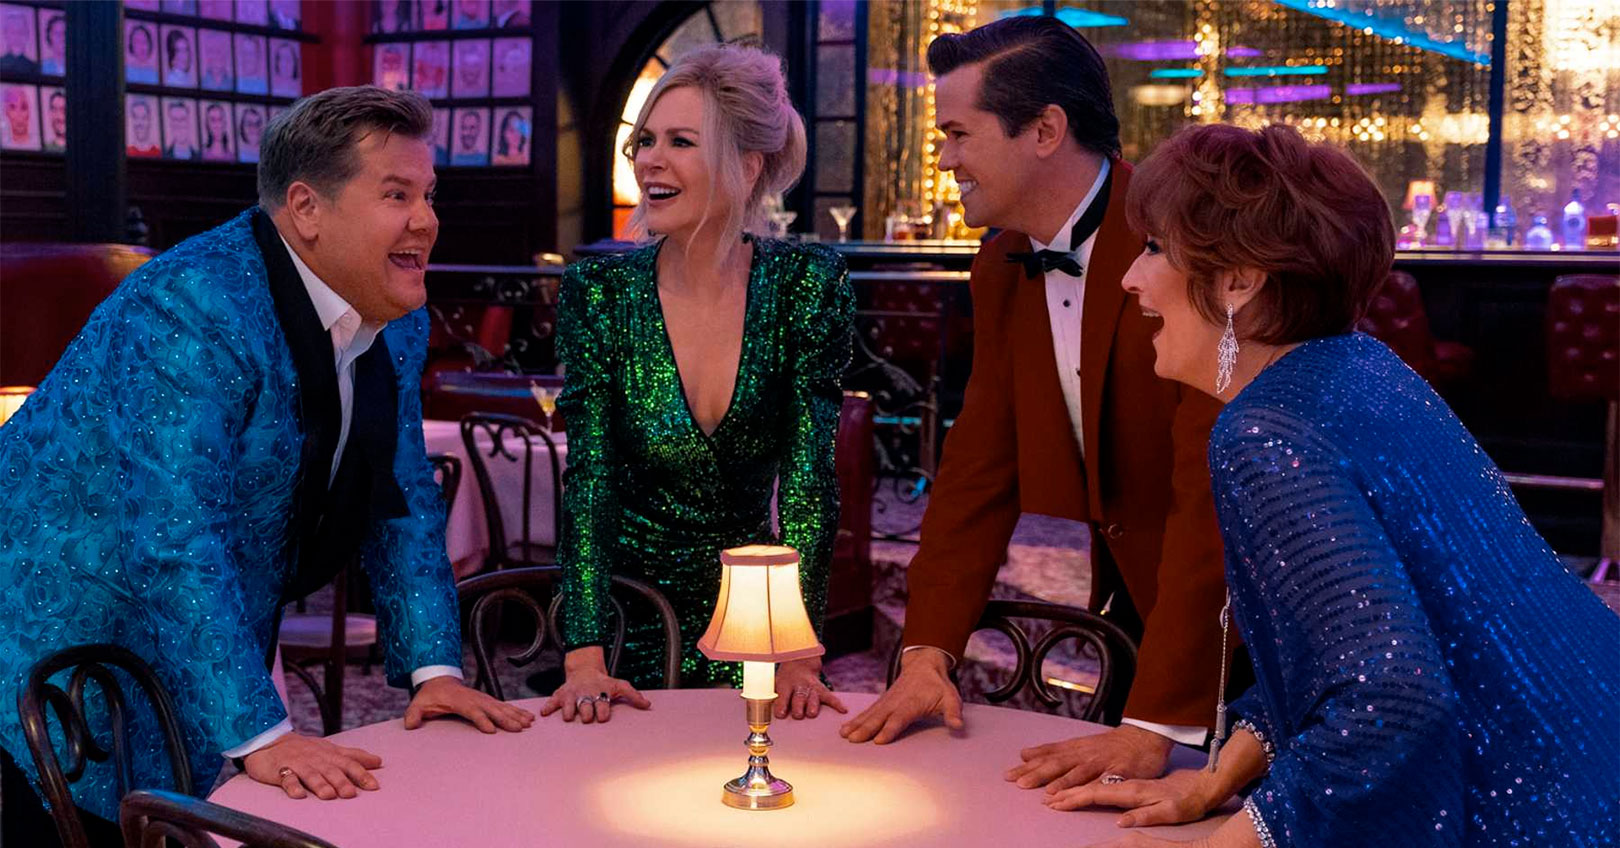 The Prom - James Corden, Nicole Kidman, Andrew Rannells, and Meryl Streep